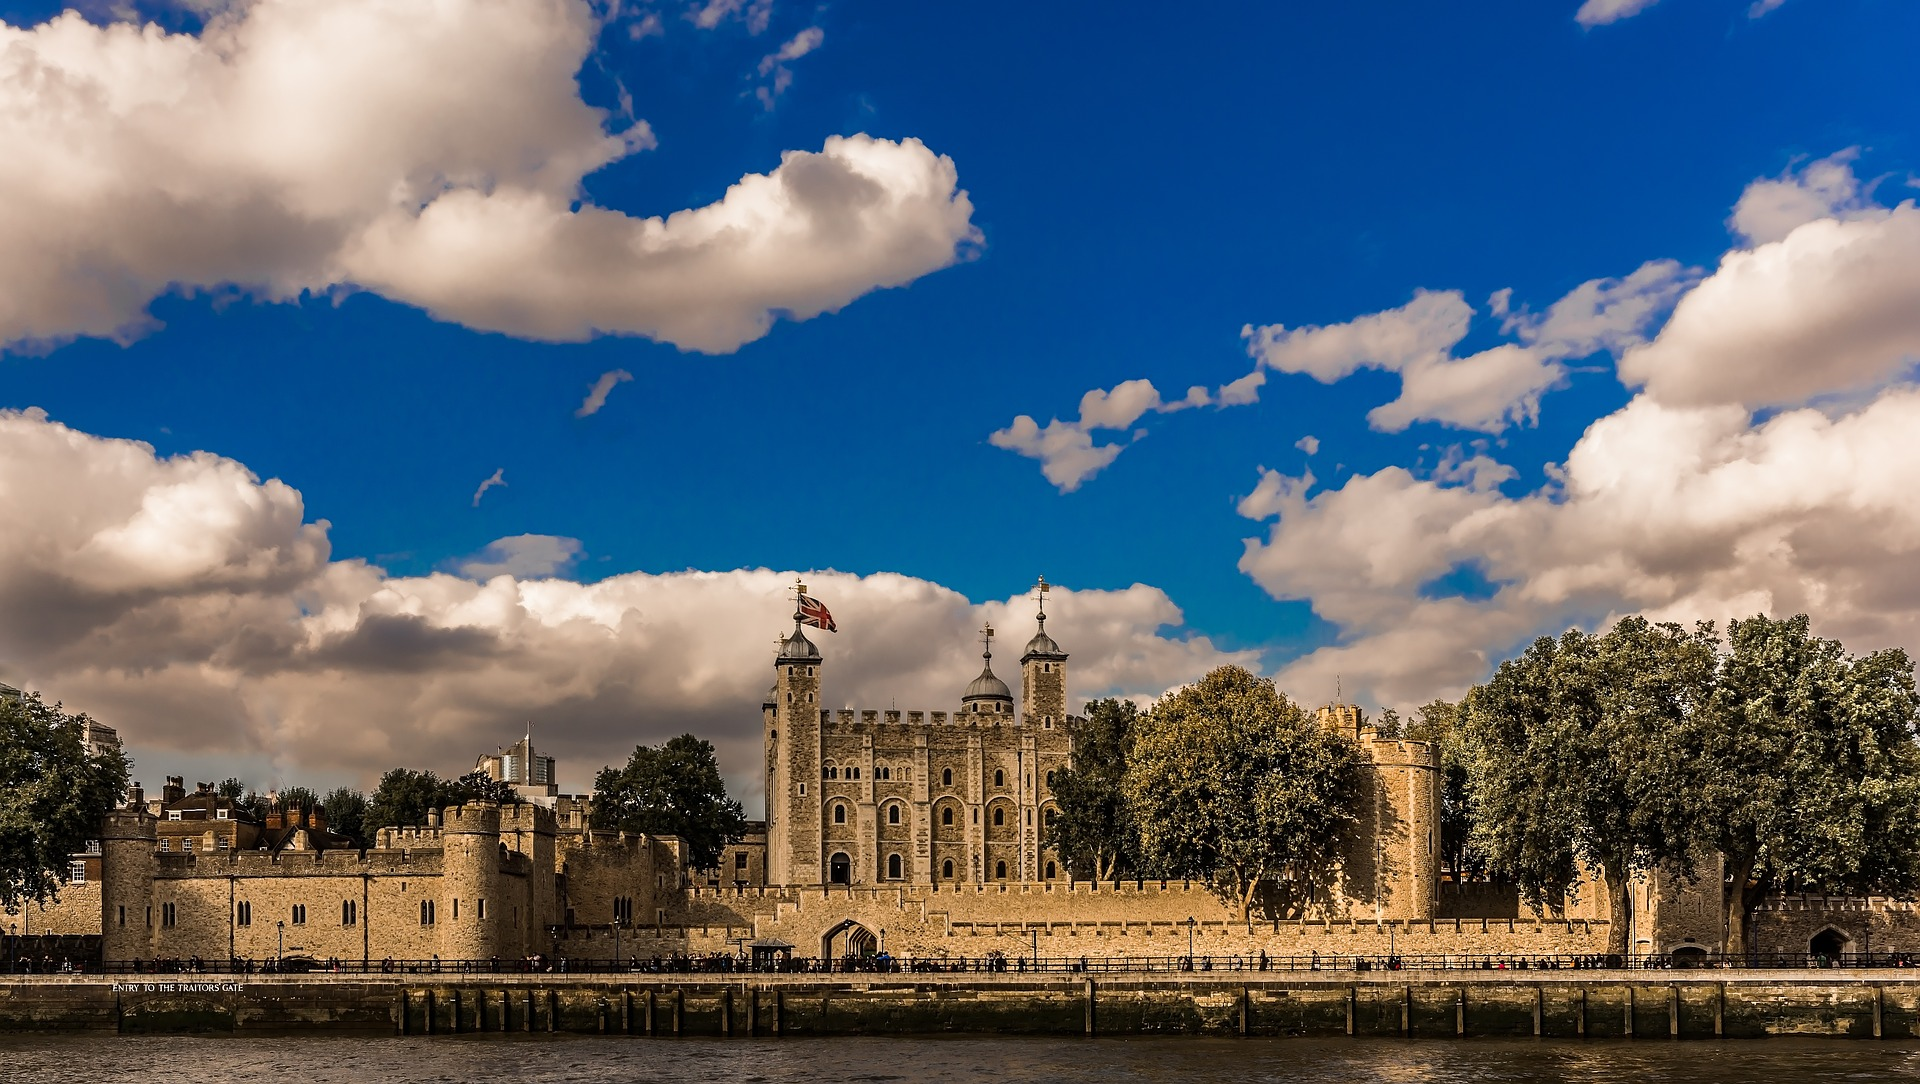 Tower of London, Royal Palace, White Tower